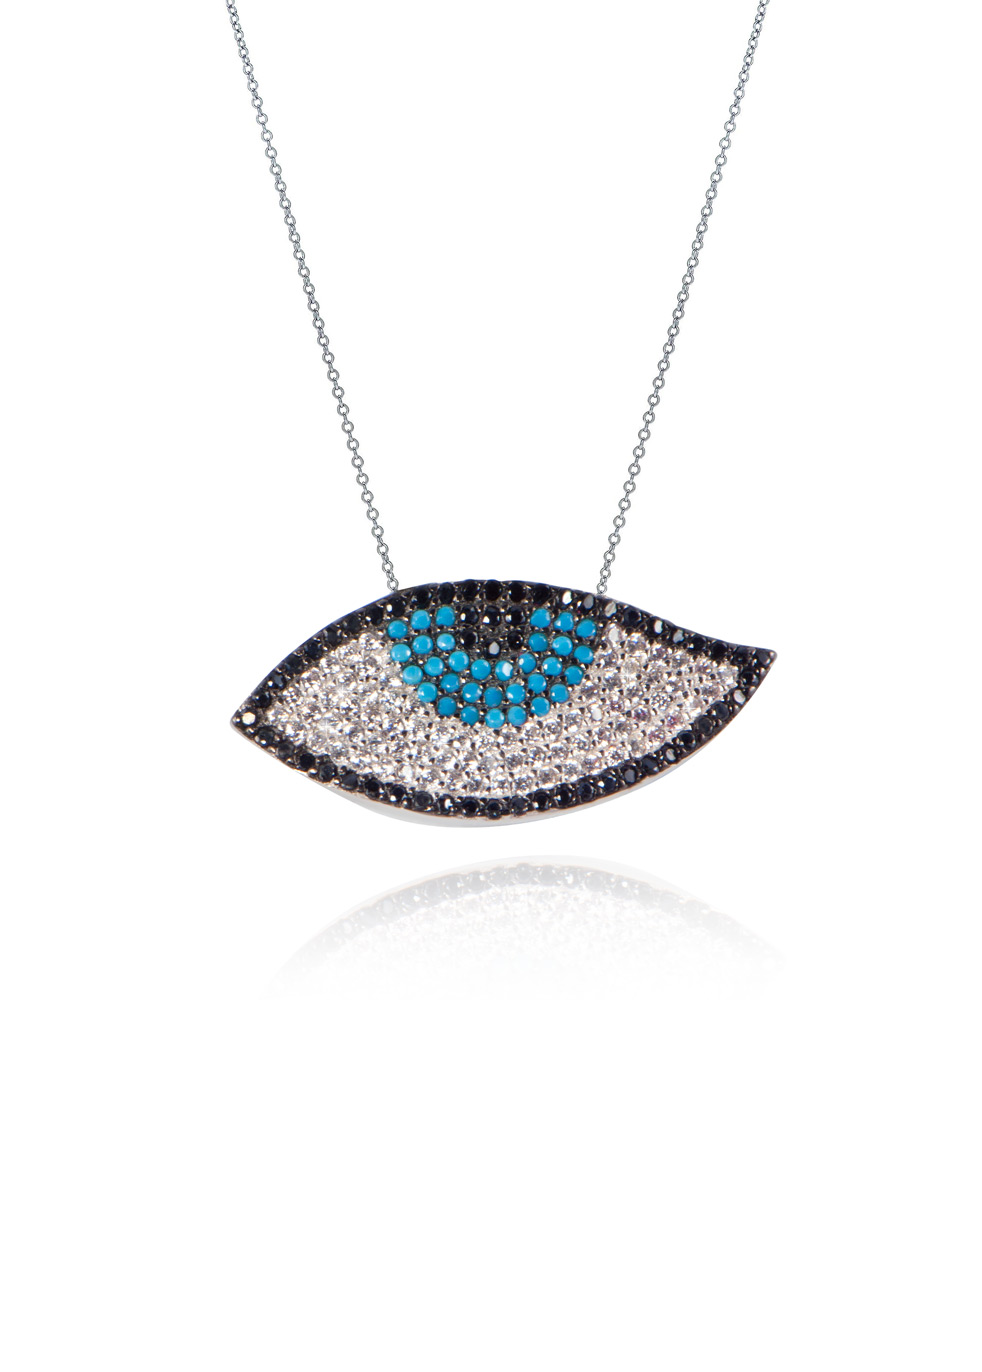 LUCKY CHARM EVIL EYE NECKLACE